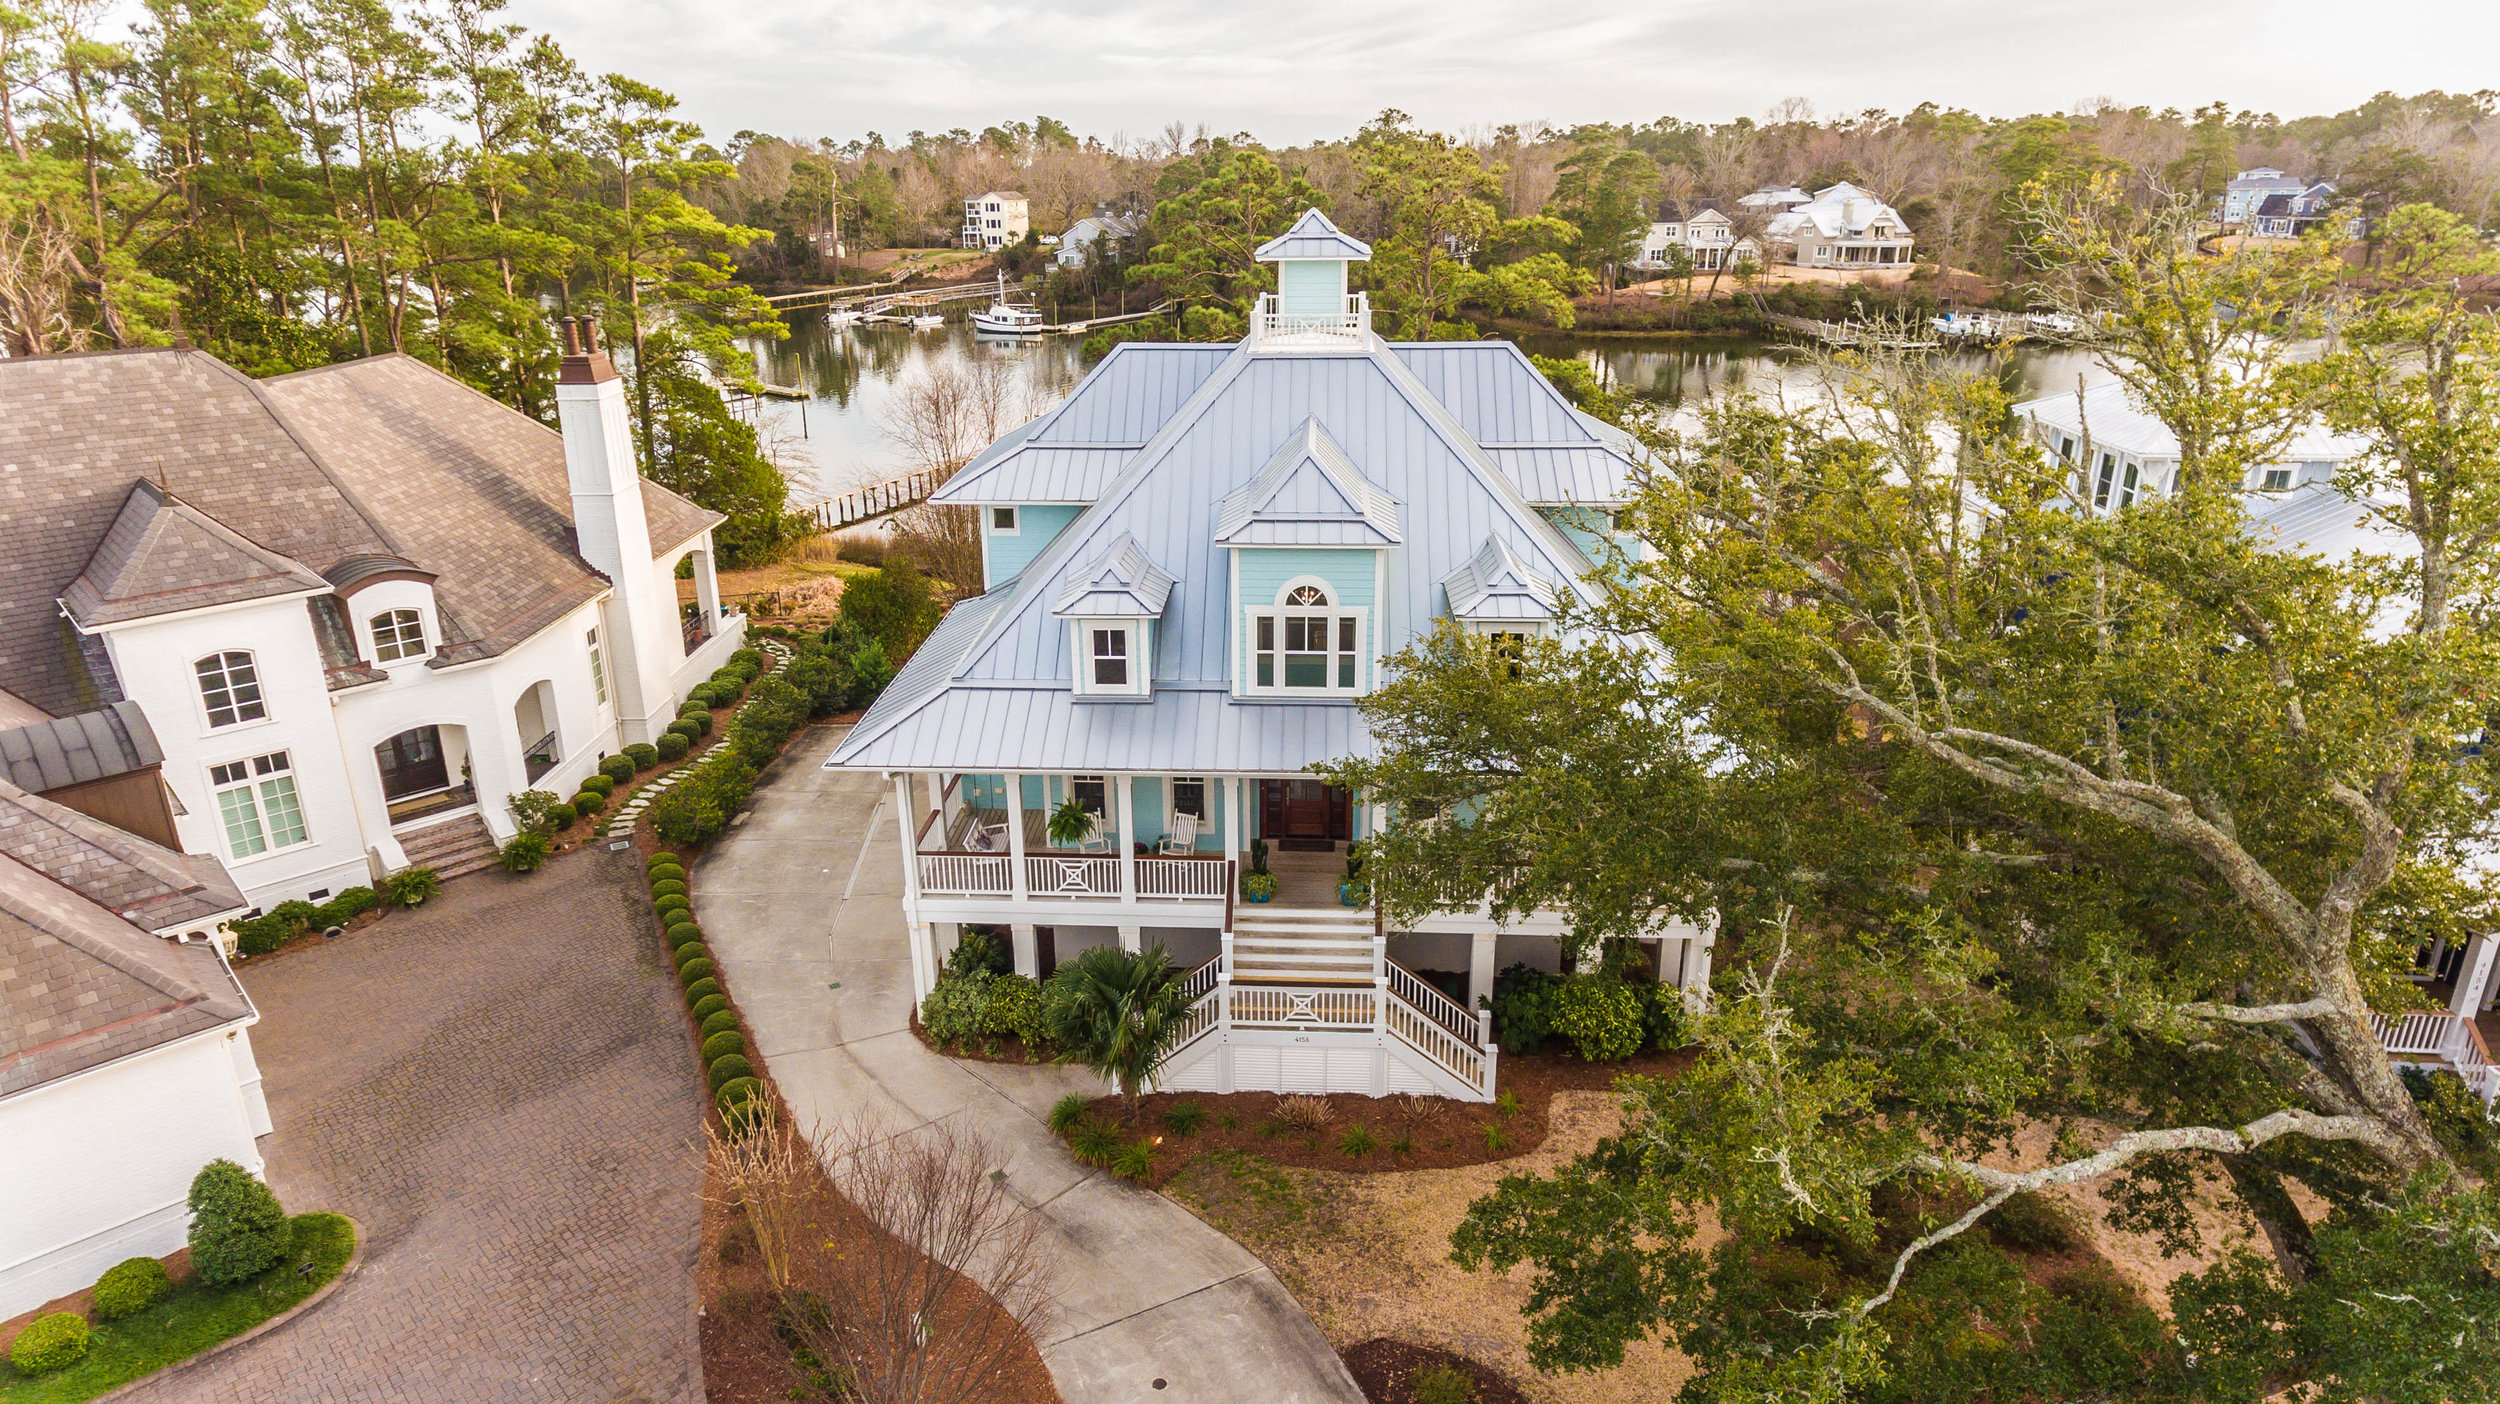 4158 Donnelly Ln Wilmington NC-print-001-1-DJI 0011-3940x2213-300dpi.jpg